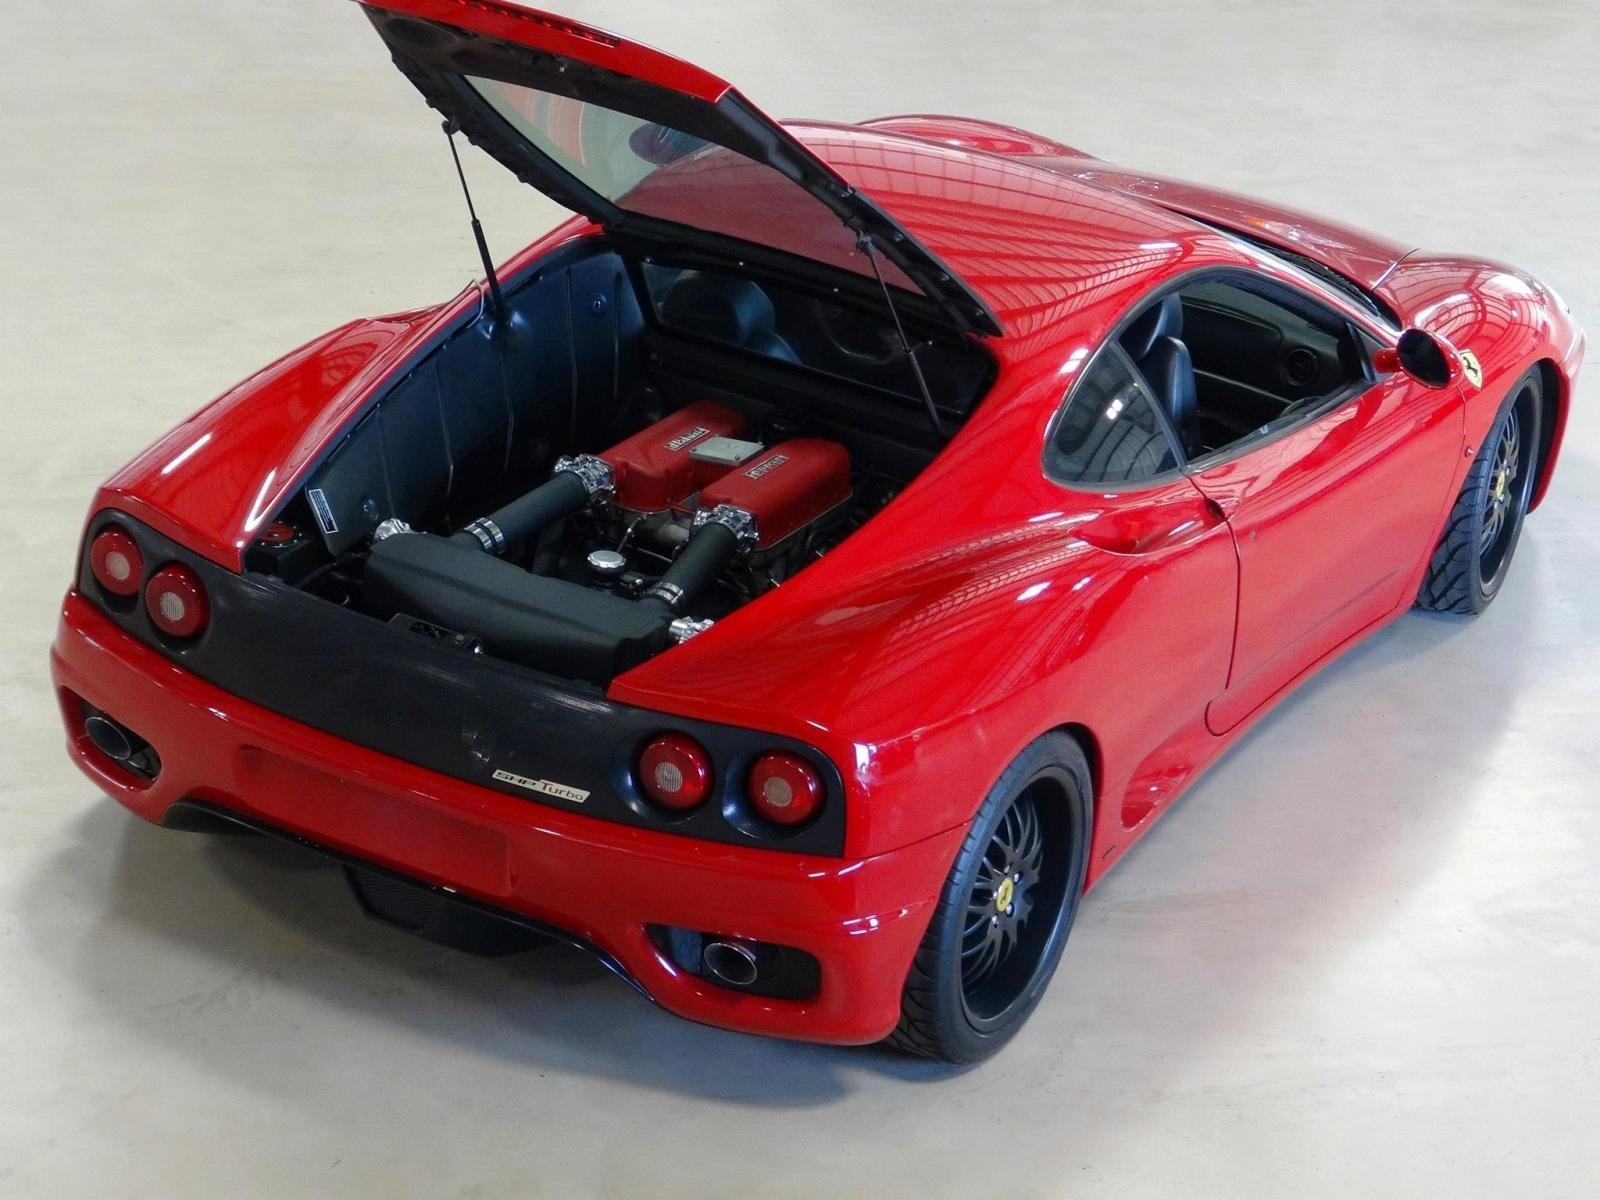 serioushp 39 s turbo kit can nearly double the ferrari 360 modena 39 s horsepower news top speed. Black Bedroom Furniture Sets. Home Design Ideas